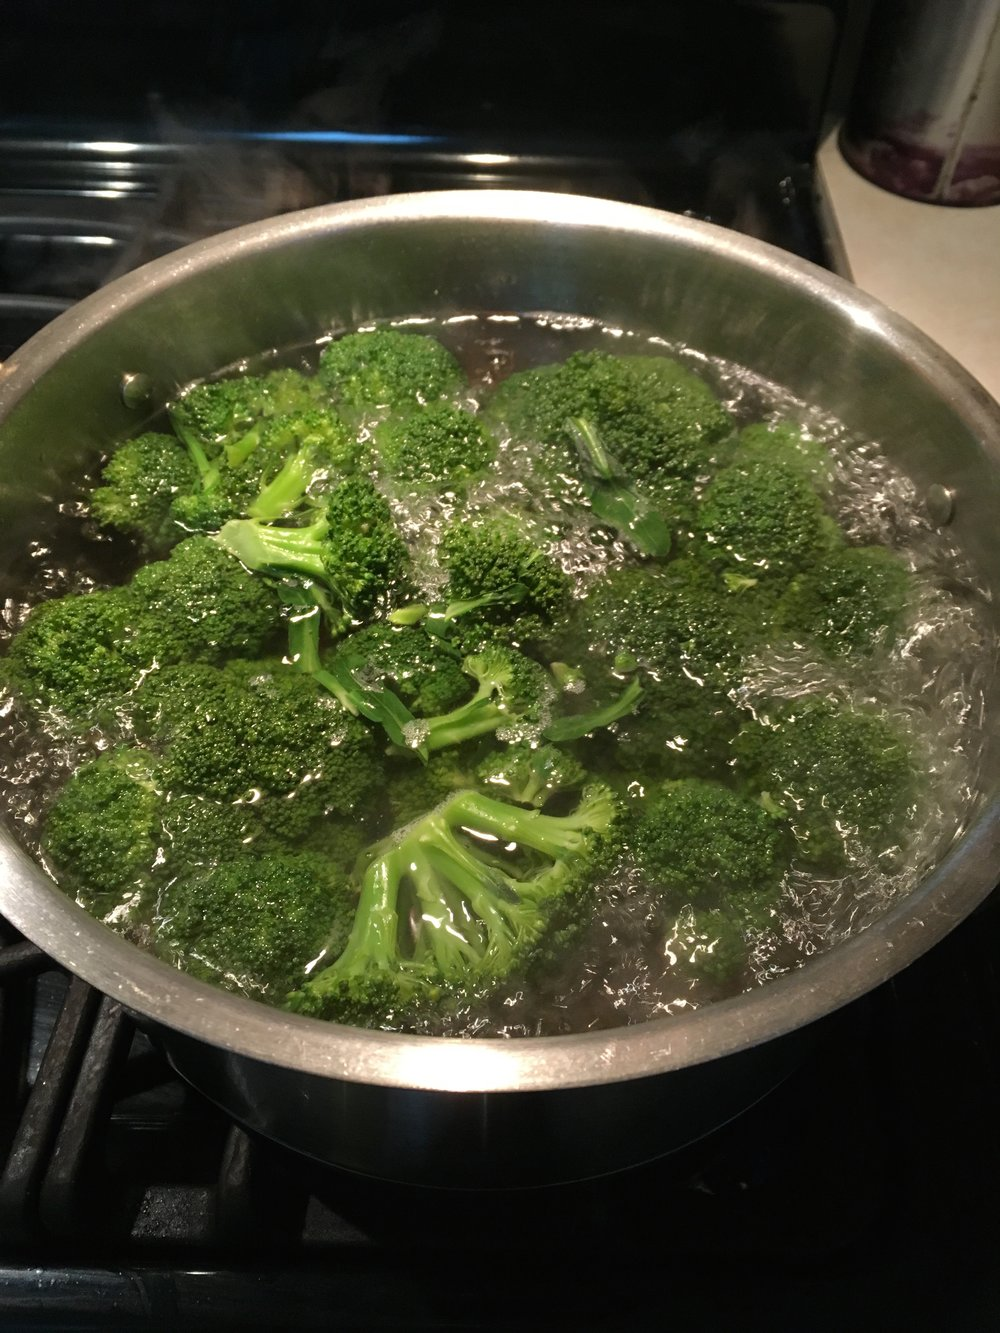 Boiling the broccoli